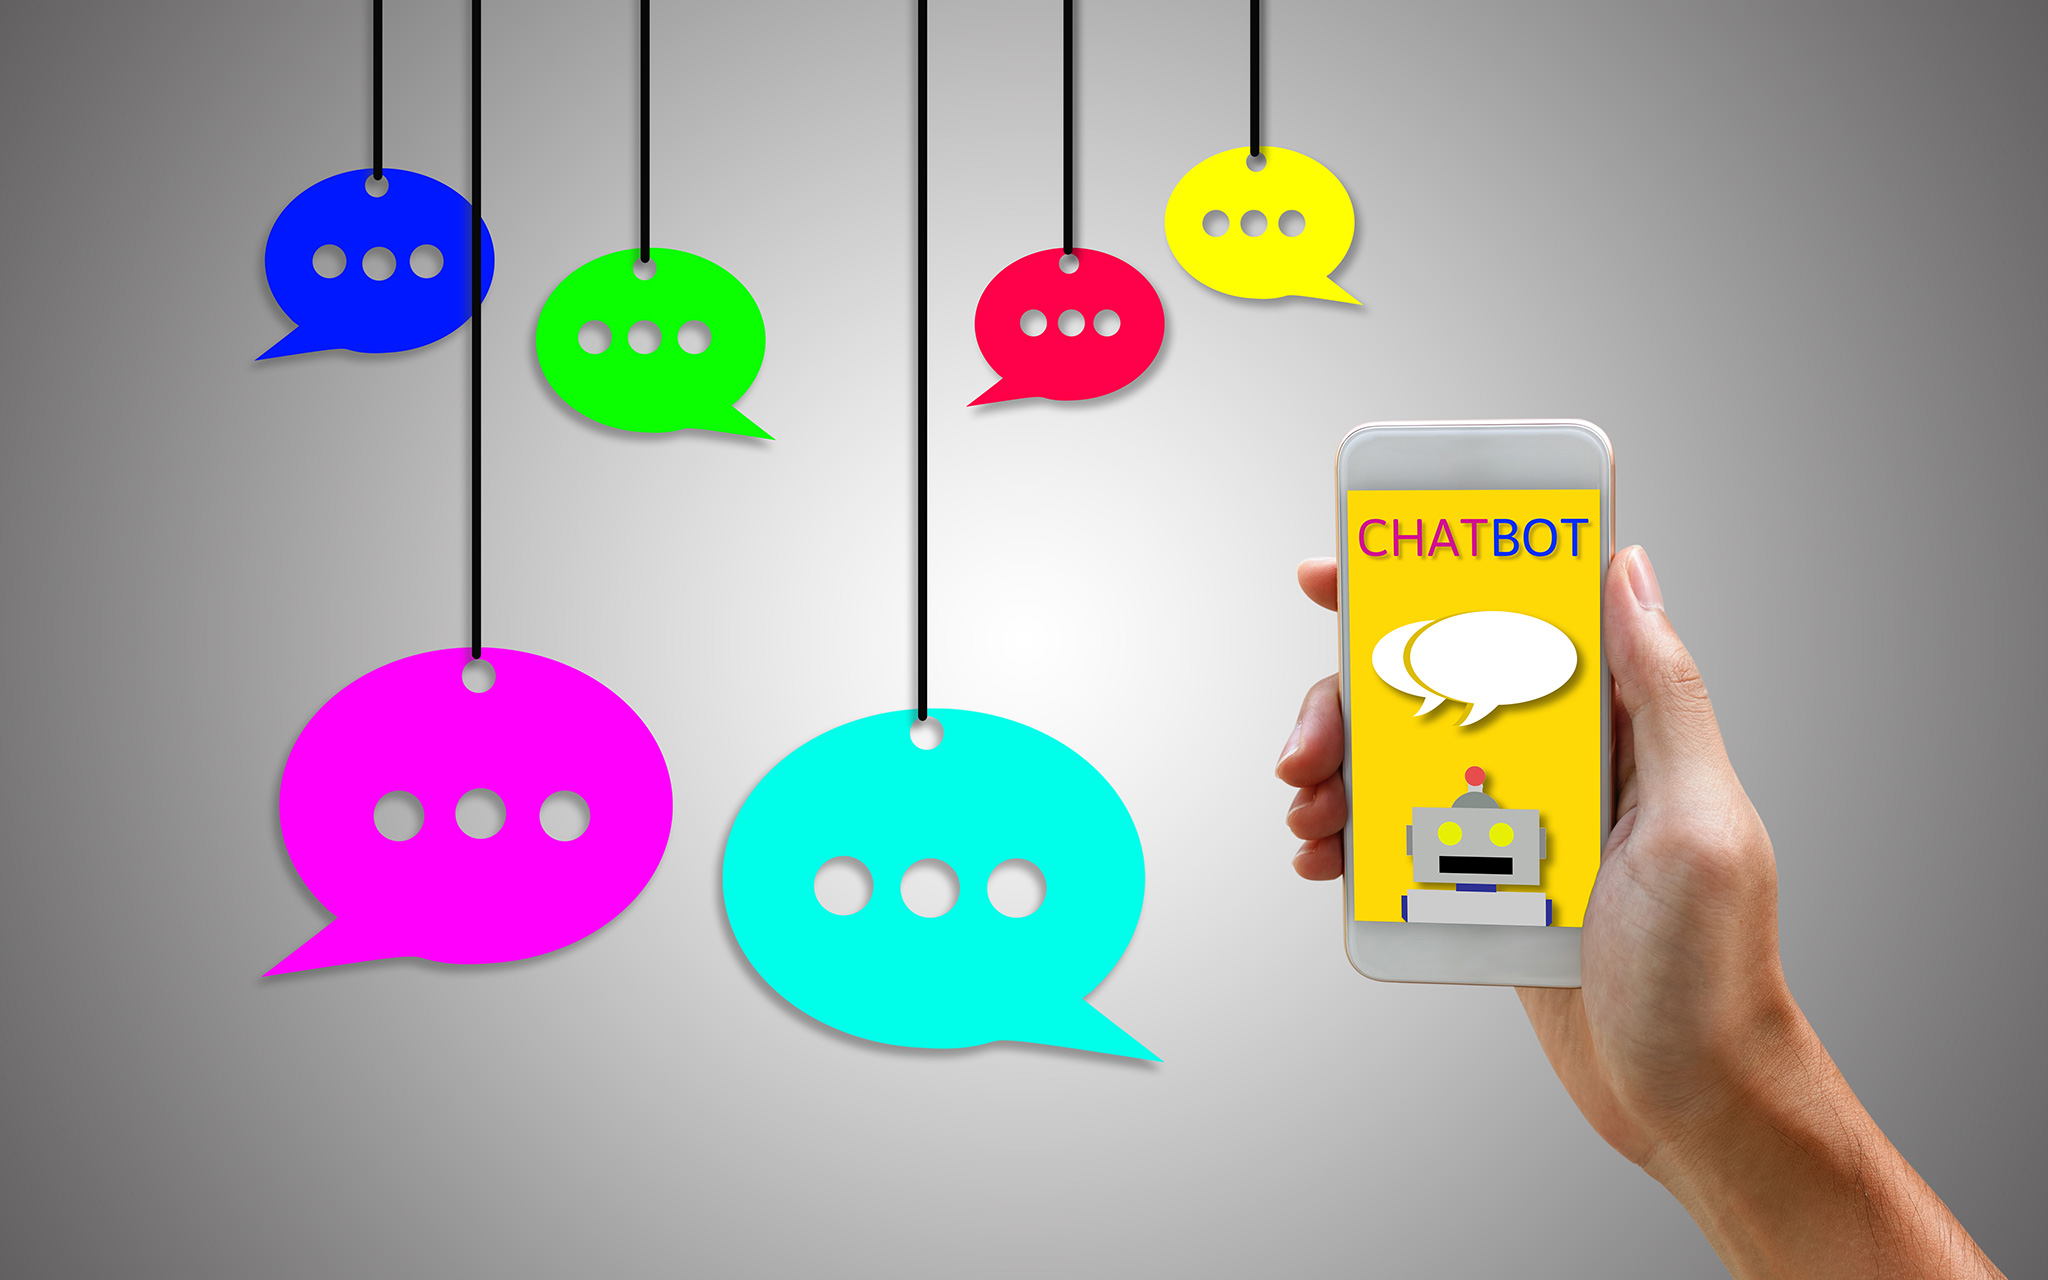 ROBOT OVERLORDS: PREPARE FOR THE CHATBOT INVASION